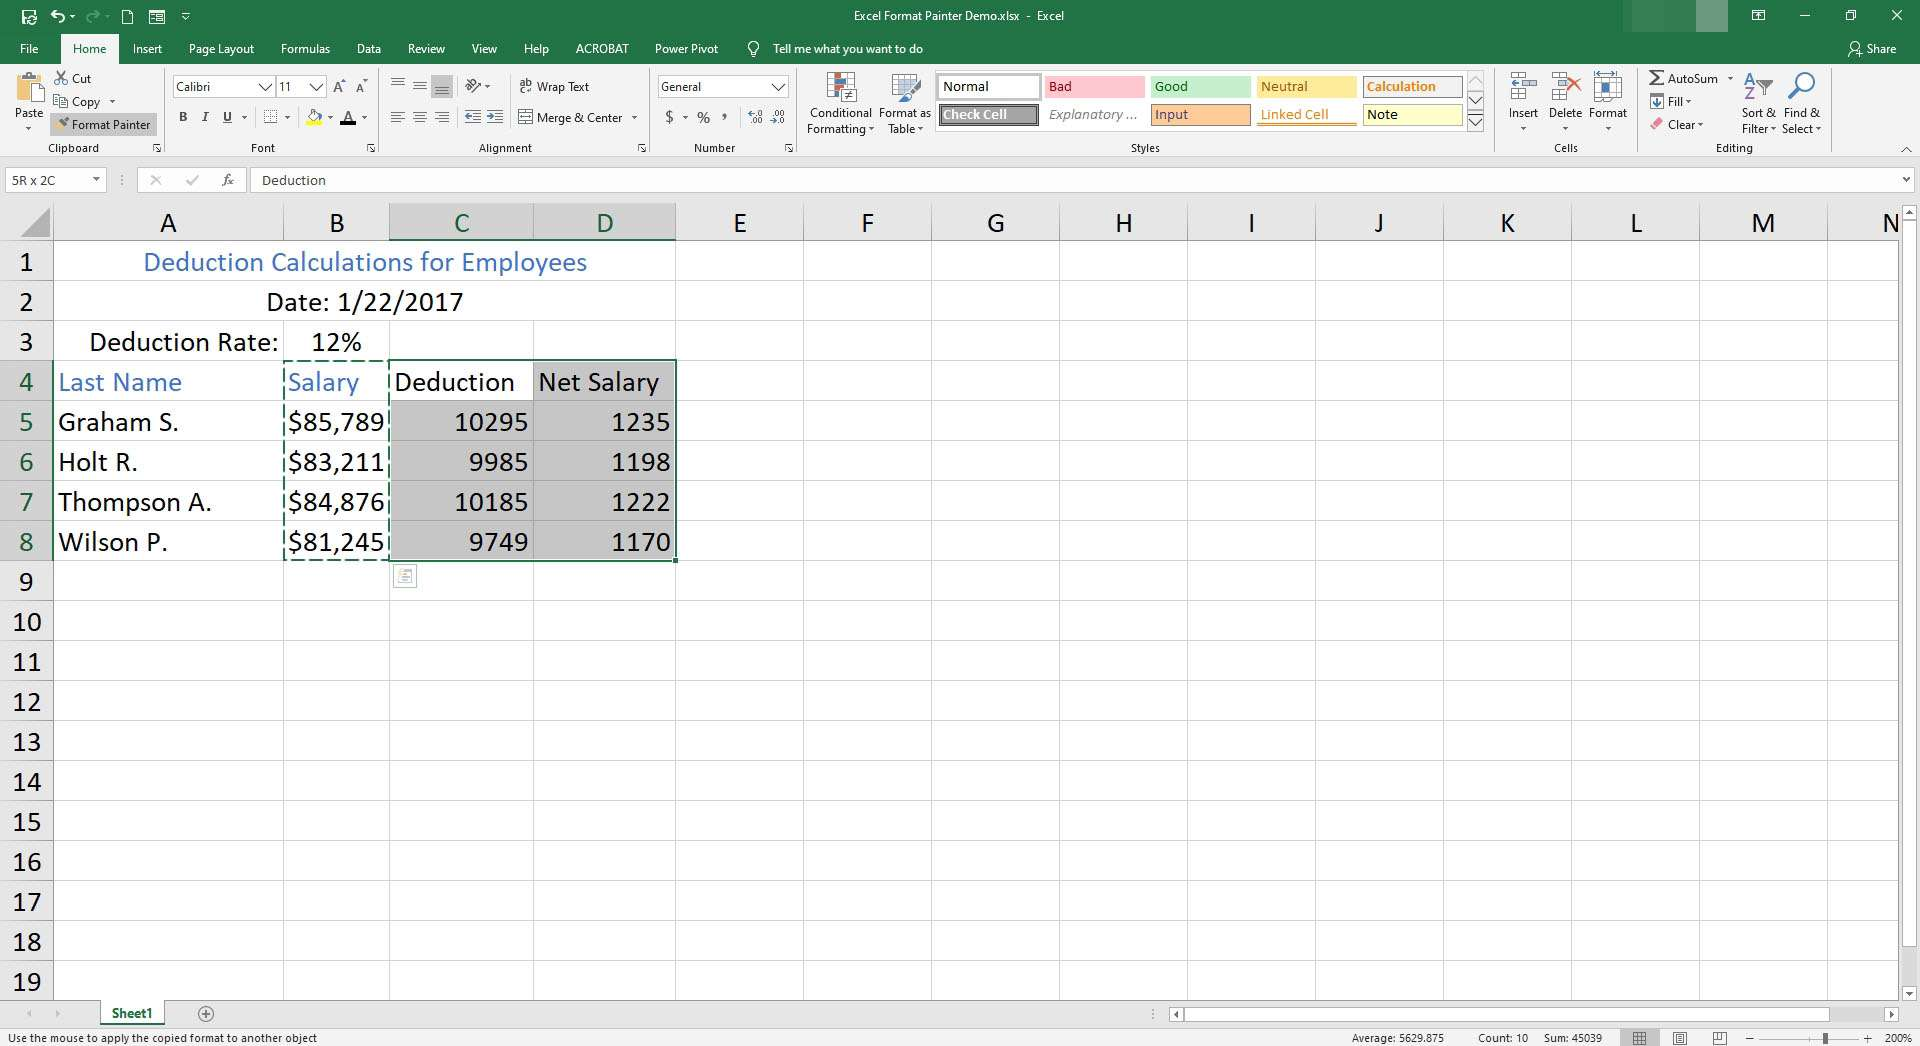 Cells C4 through D8 are selected in Excel.